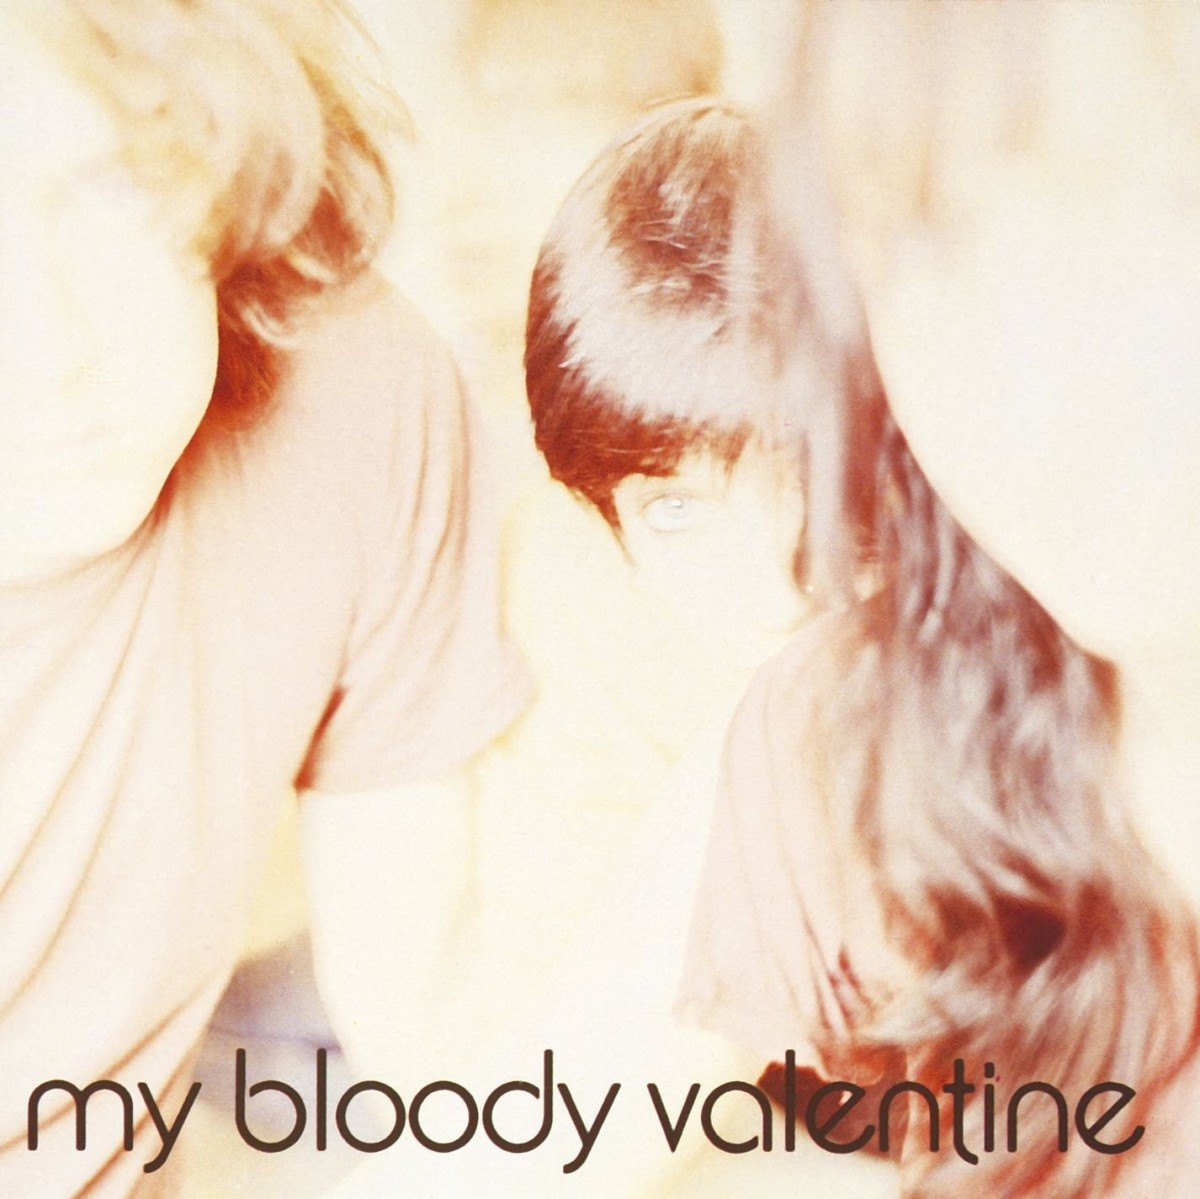 My Bloody Valentine Isn't Anything review